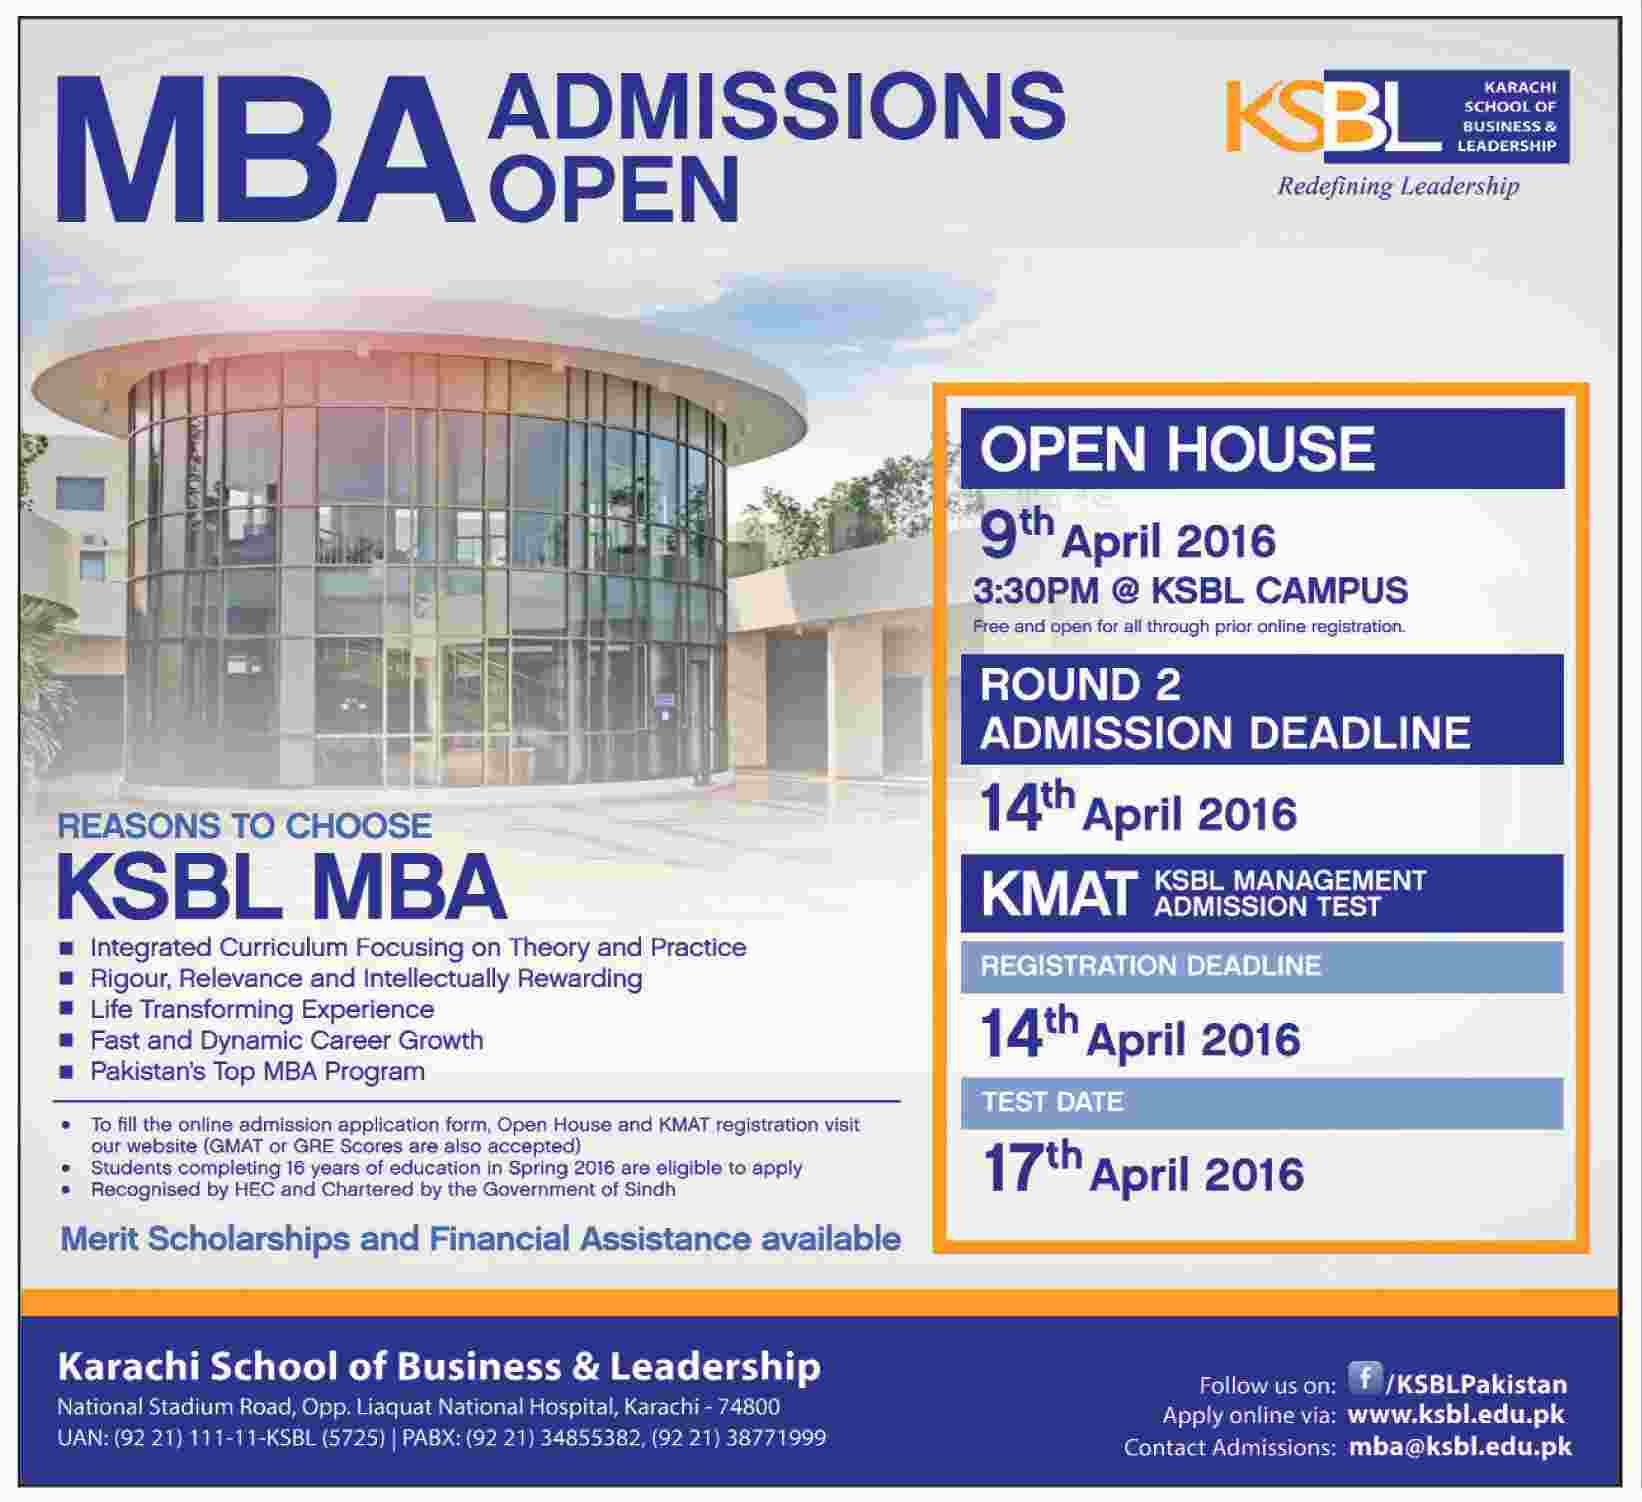 Karachi School of Bussiness and Leadership Admissions 2016